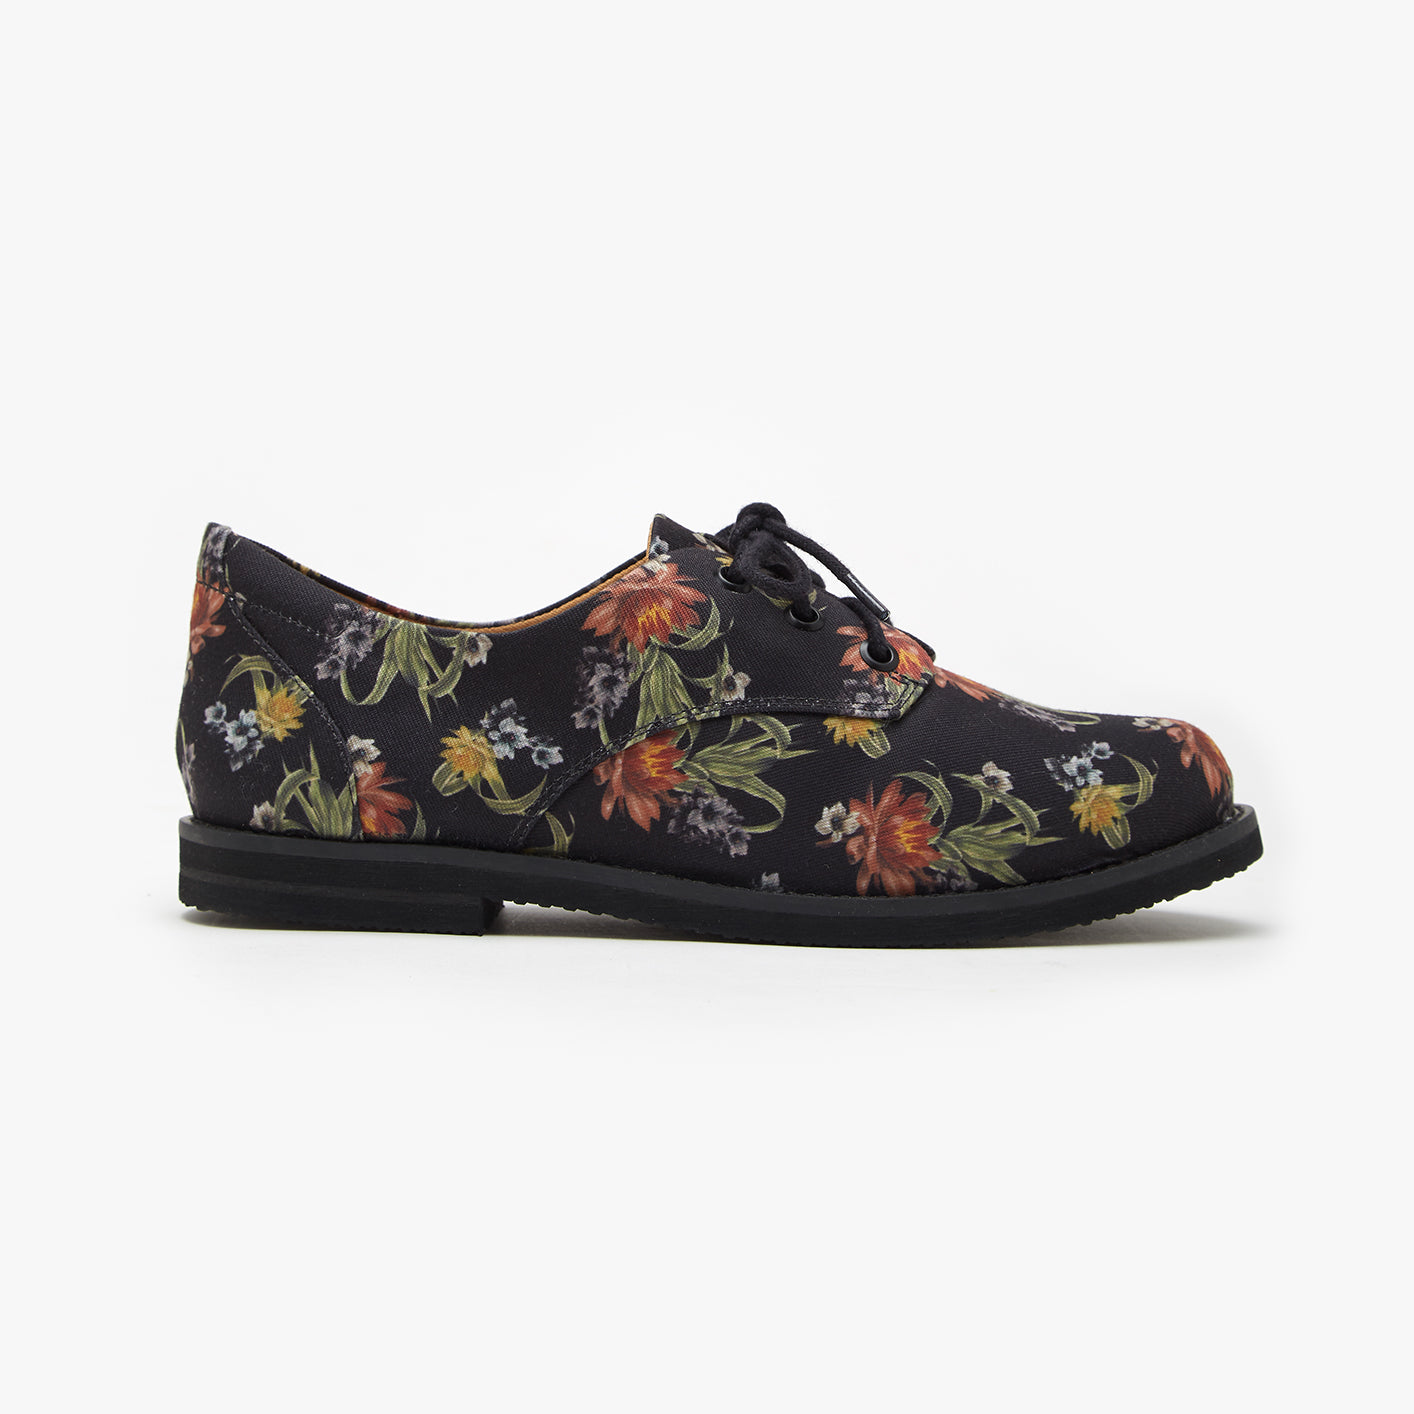 TIJUCA OXFORD - Insecta Shoes Brasil